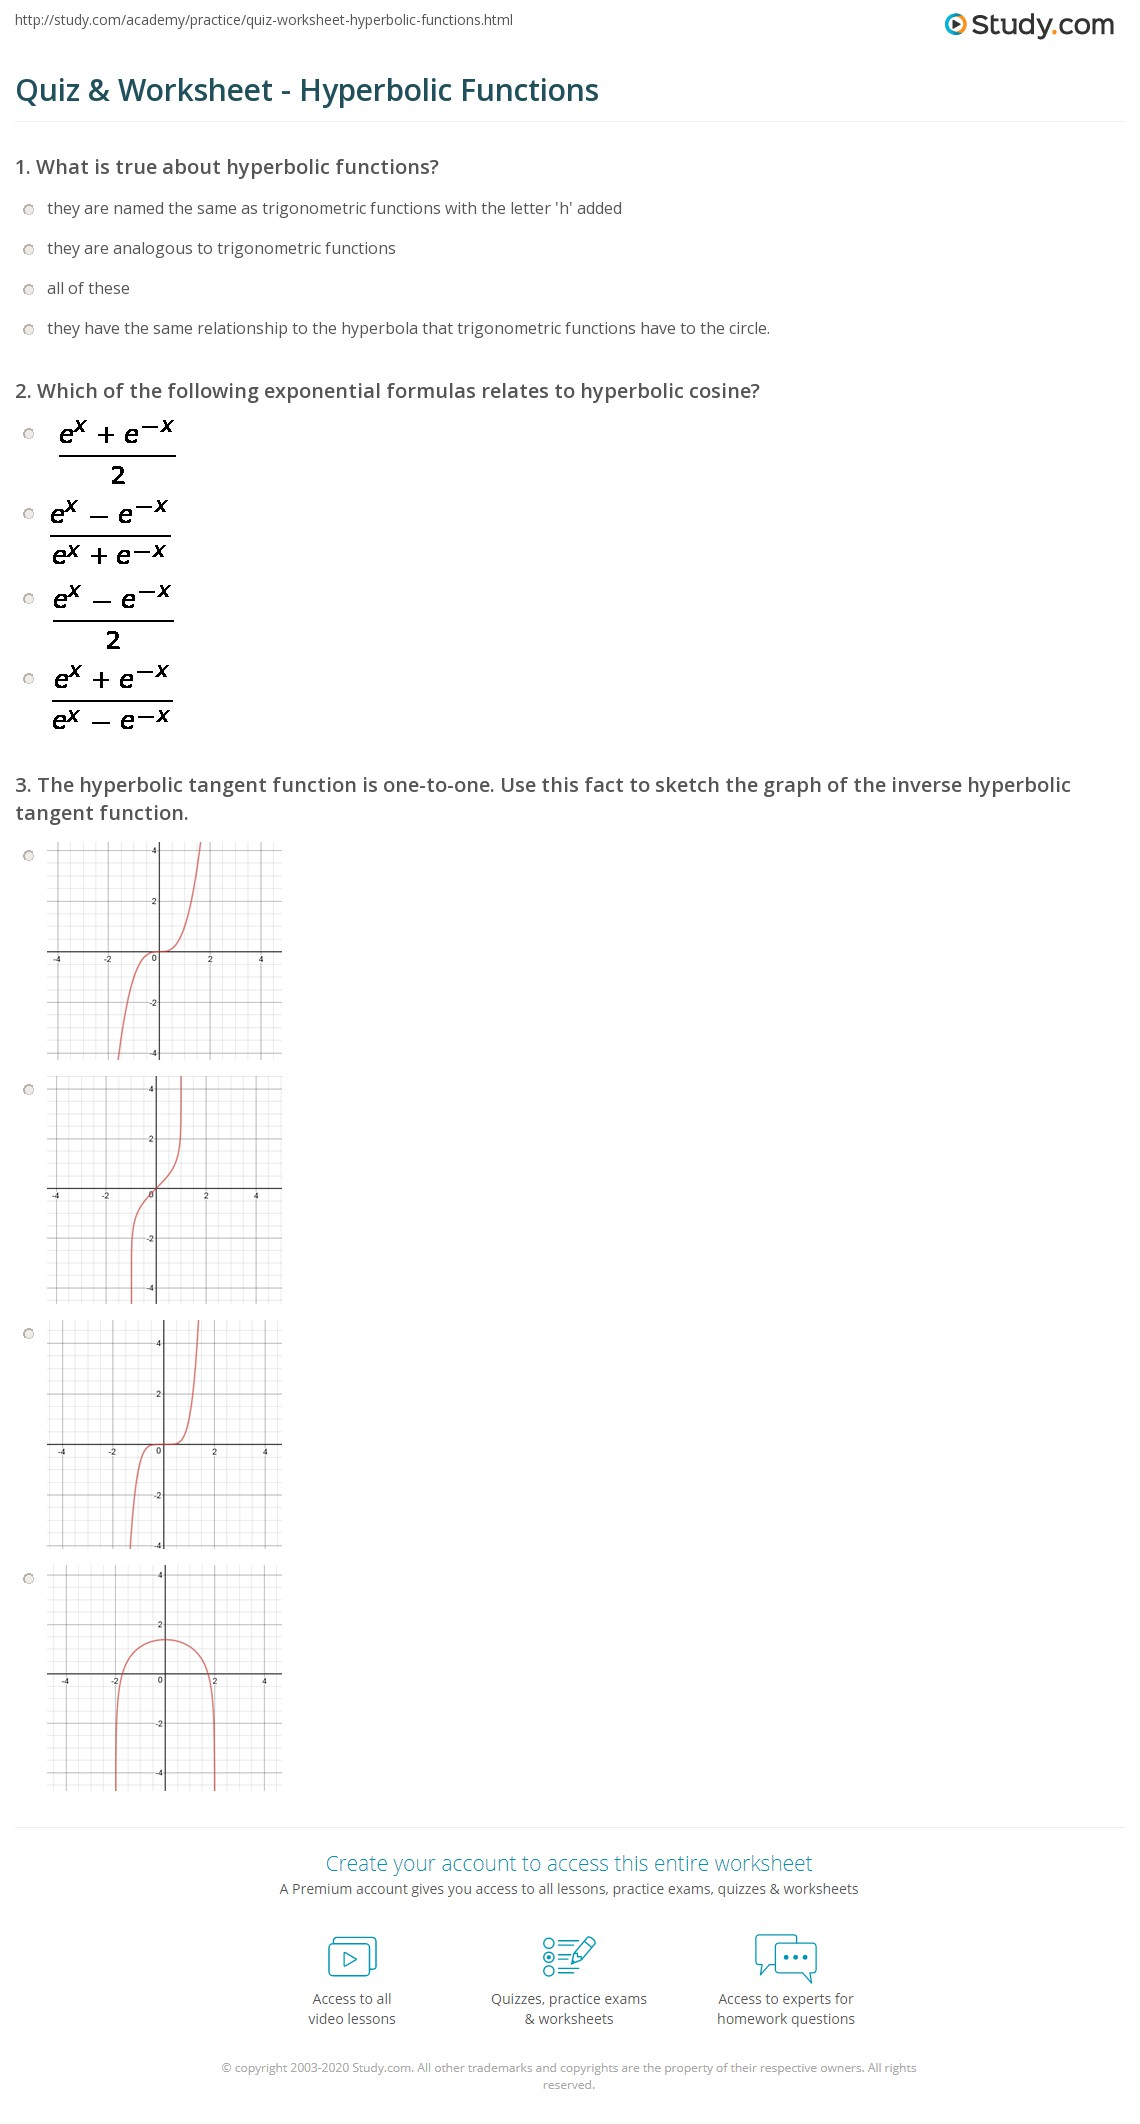 Quiz Worksheet Hyperbolic Functions Study